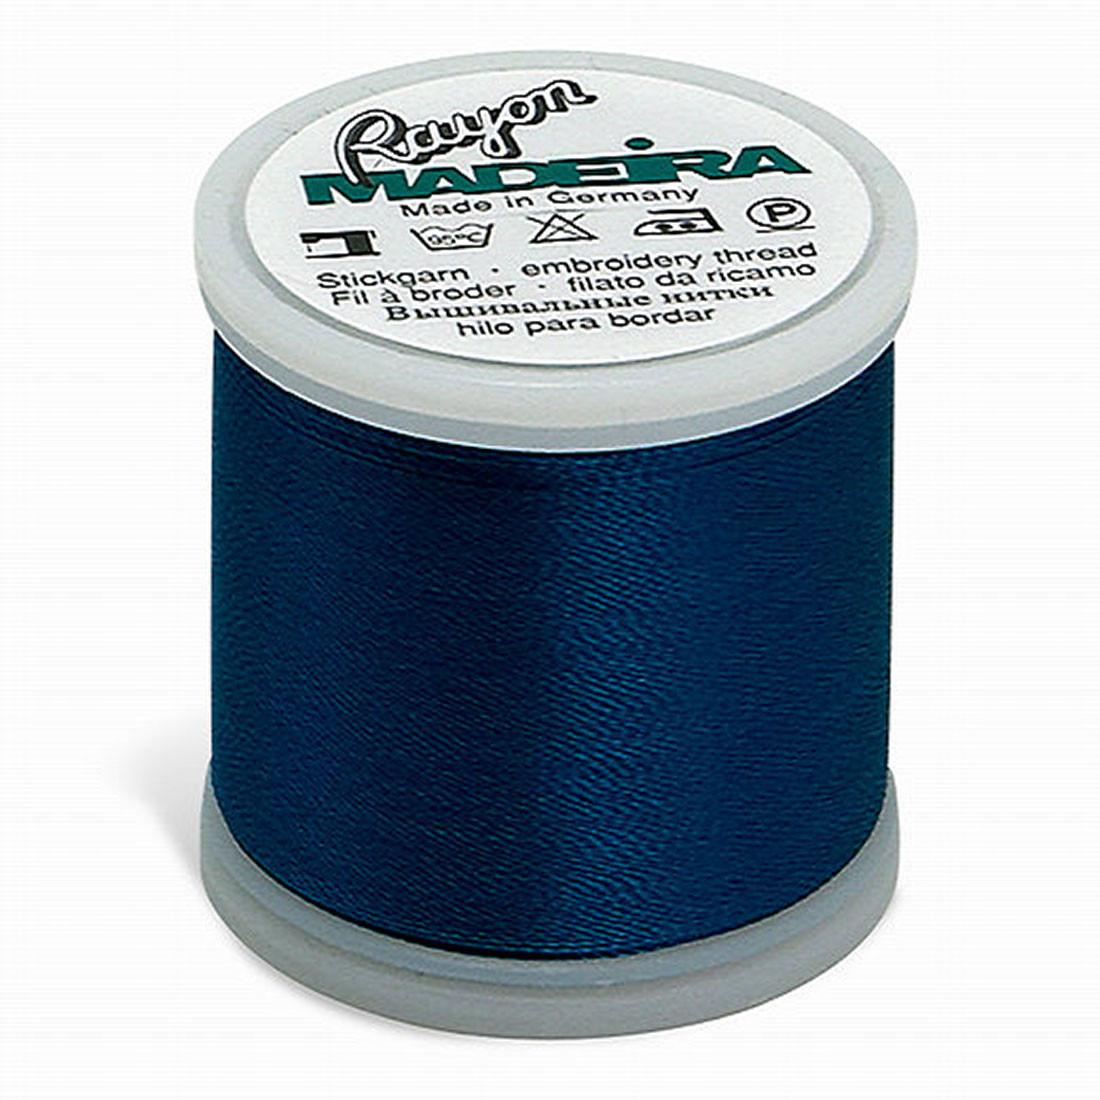 Madeira Rayon - Machine Embroidery Thread - 220YD Spool - Dark Turquoise